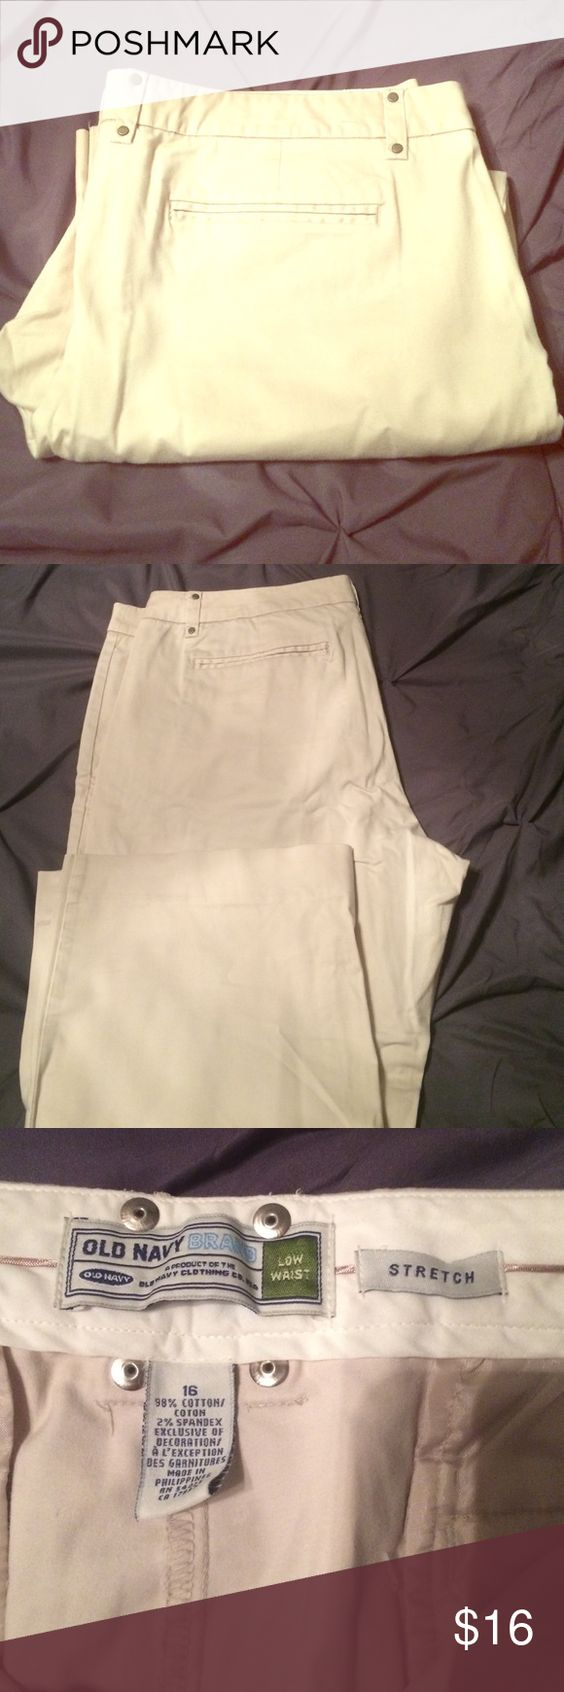 Old navy khaki capris | Old navy, Capri and Pants